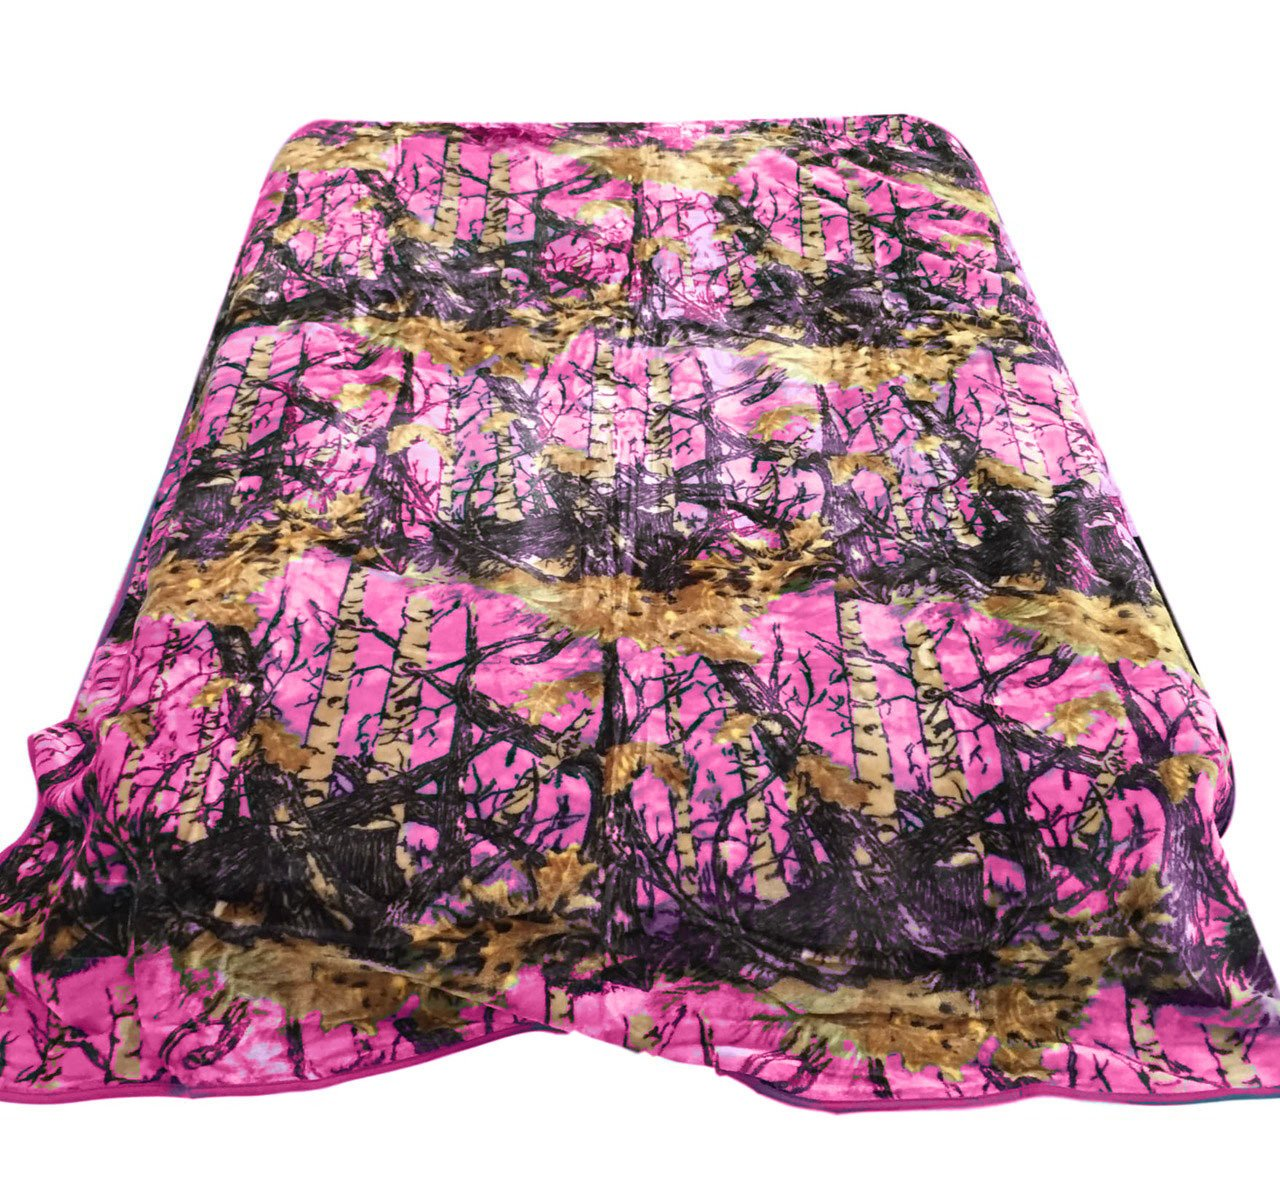 20 Lakes Hot Pink Hunter Camo Mink Blanket Queen/Full Size